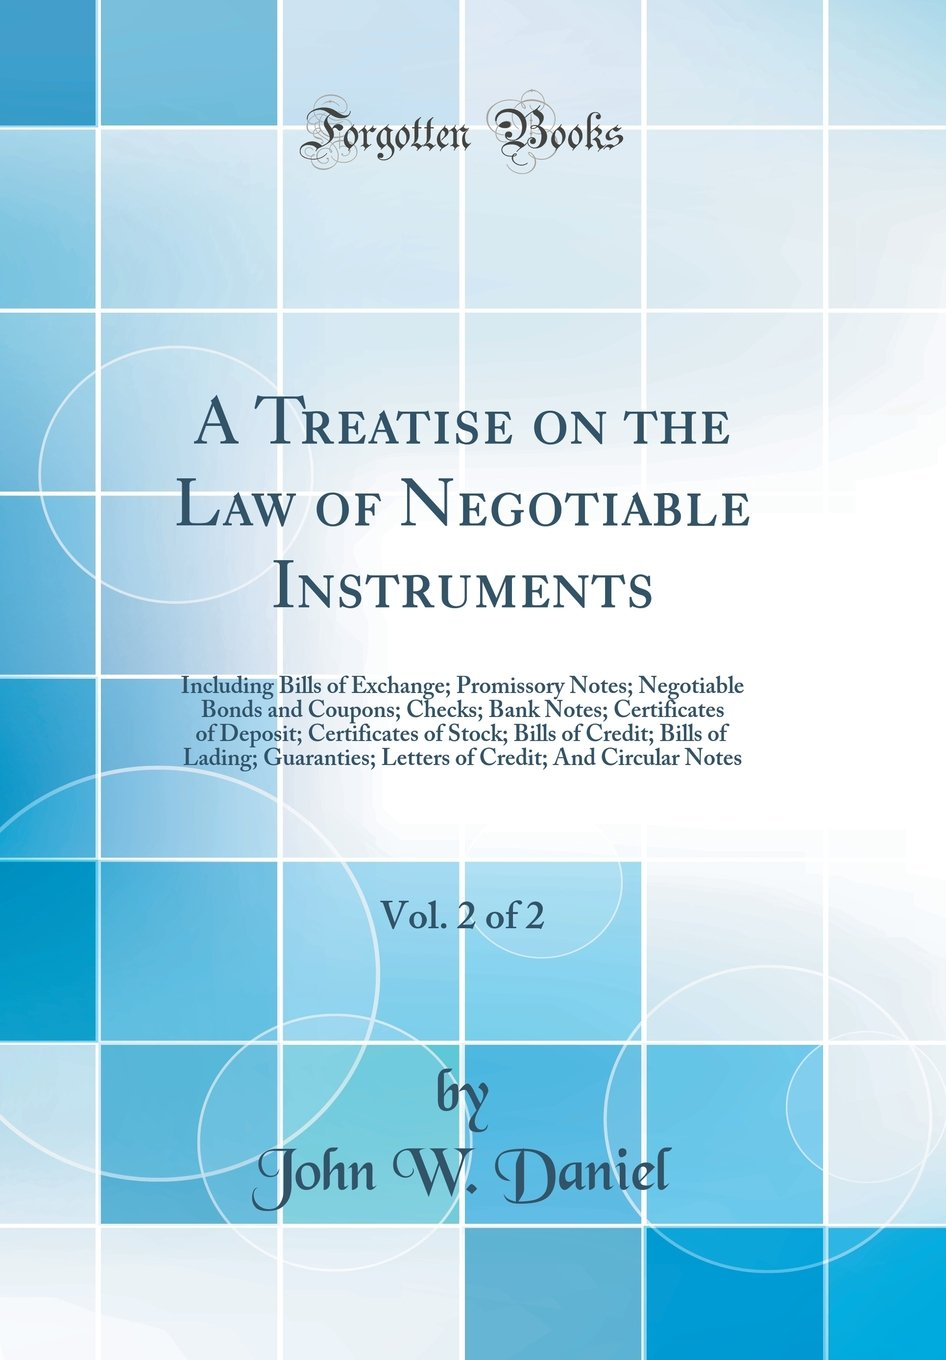 A Treatise On The Law Of Negotiable Instruments Vol 2 Of 2